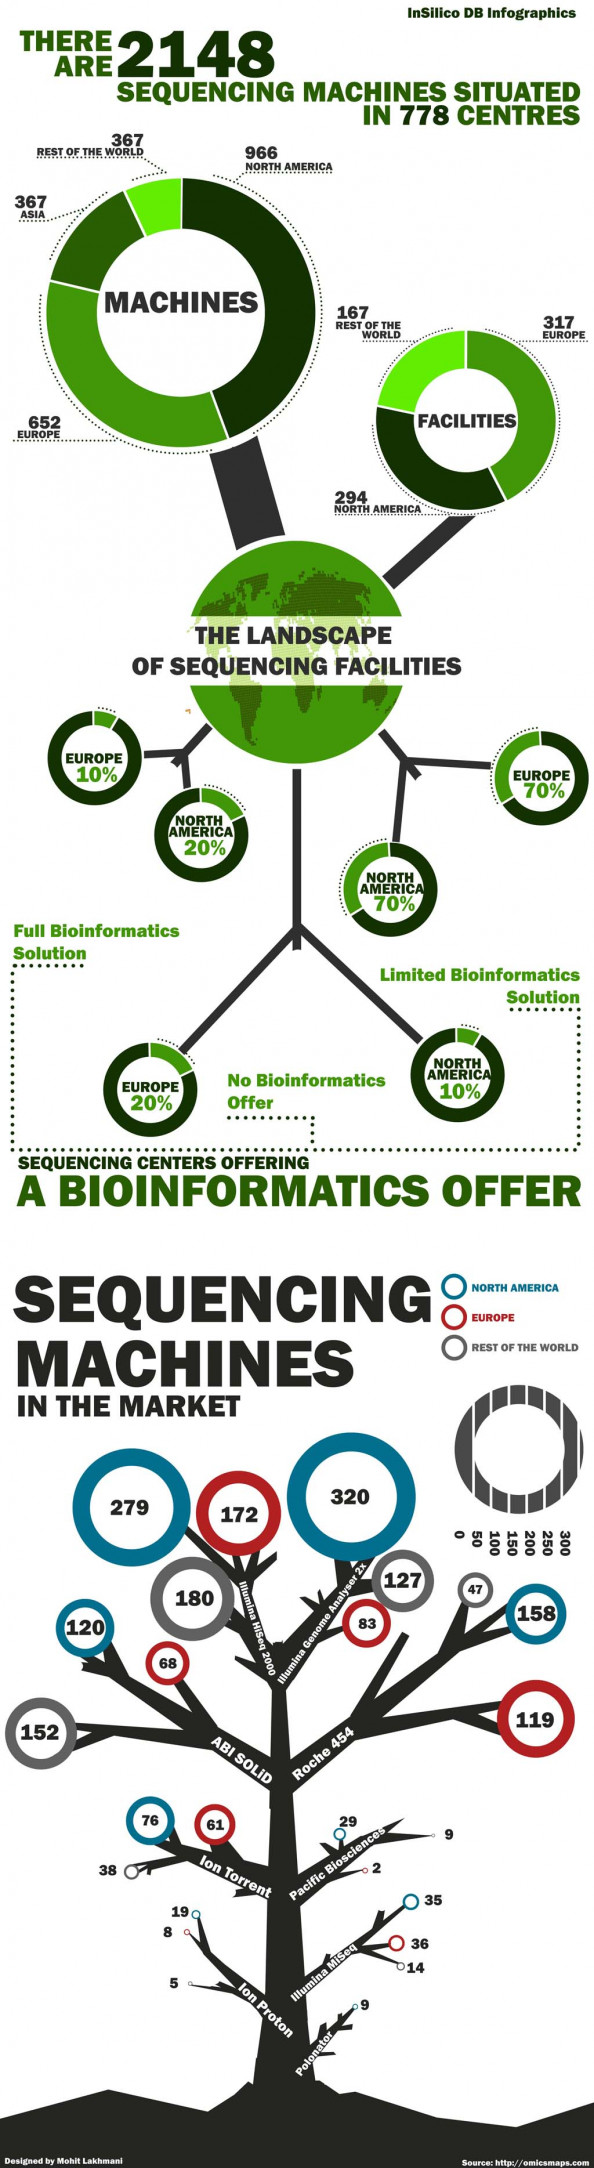 Sequencing Machines Infographic